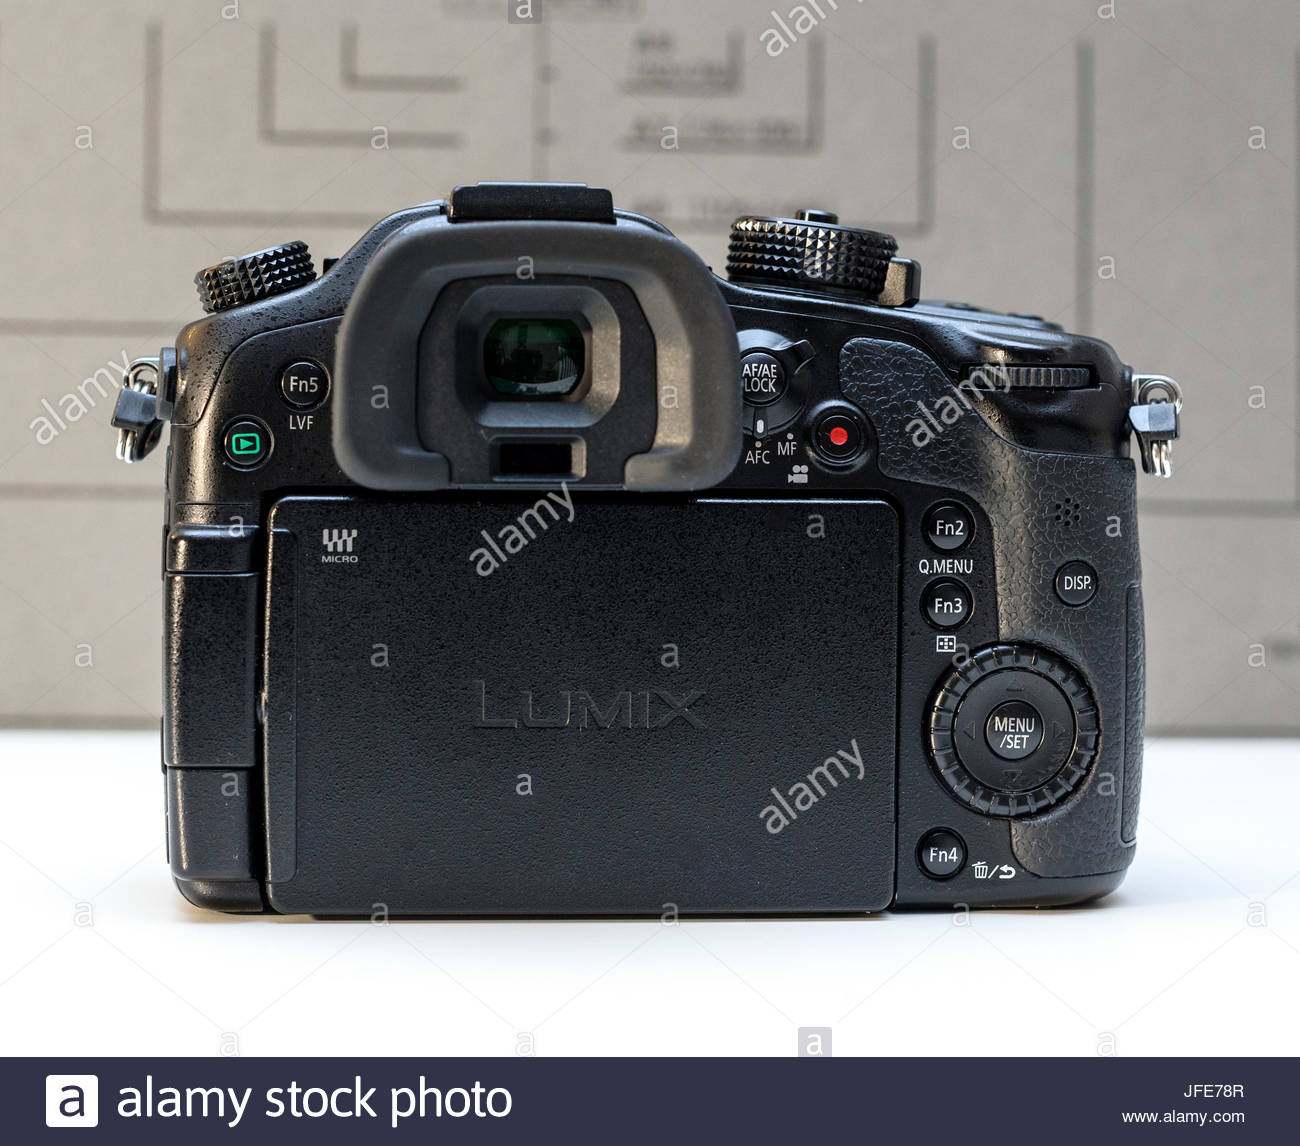 Panasonic Lumix DMC-GH4  mirrorless camera - Stock Image